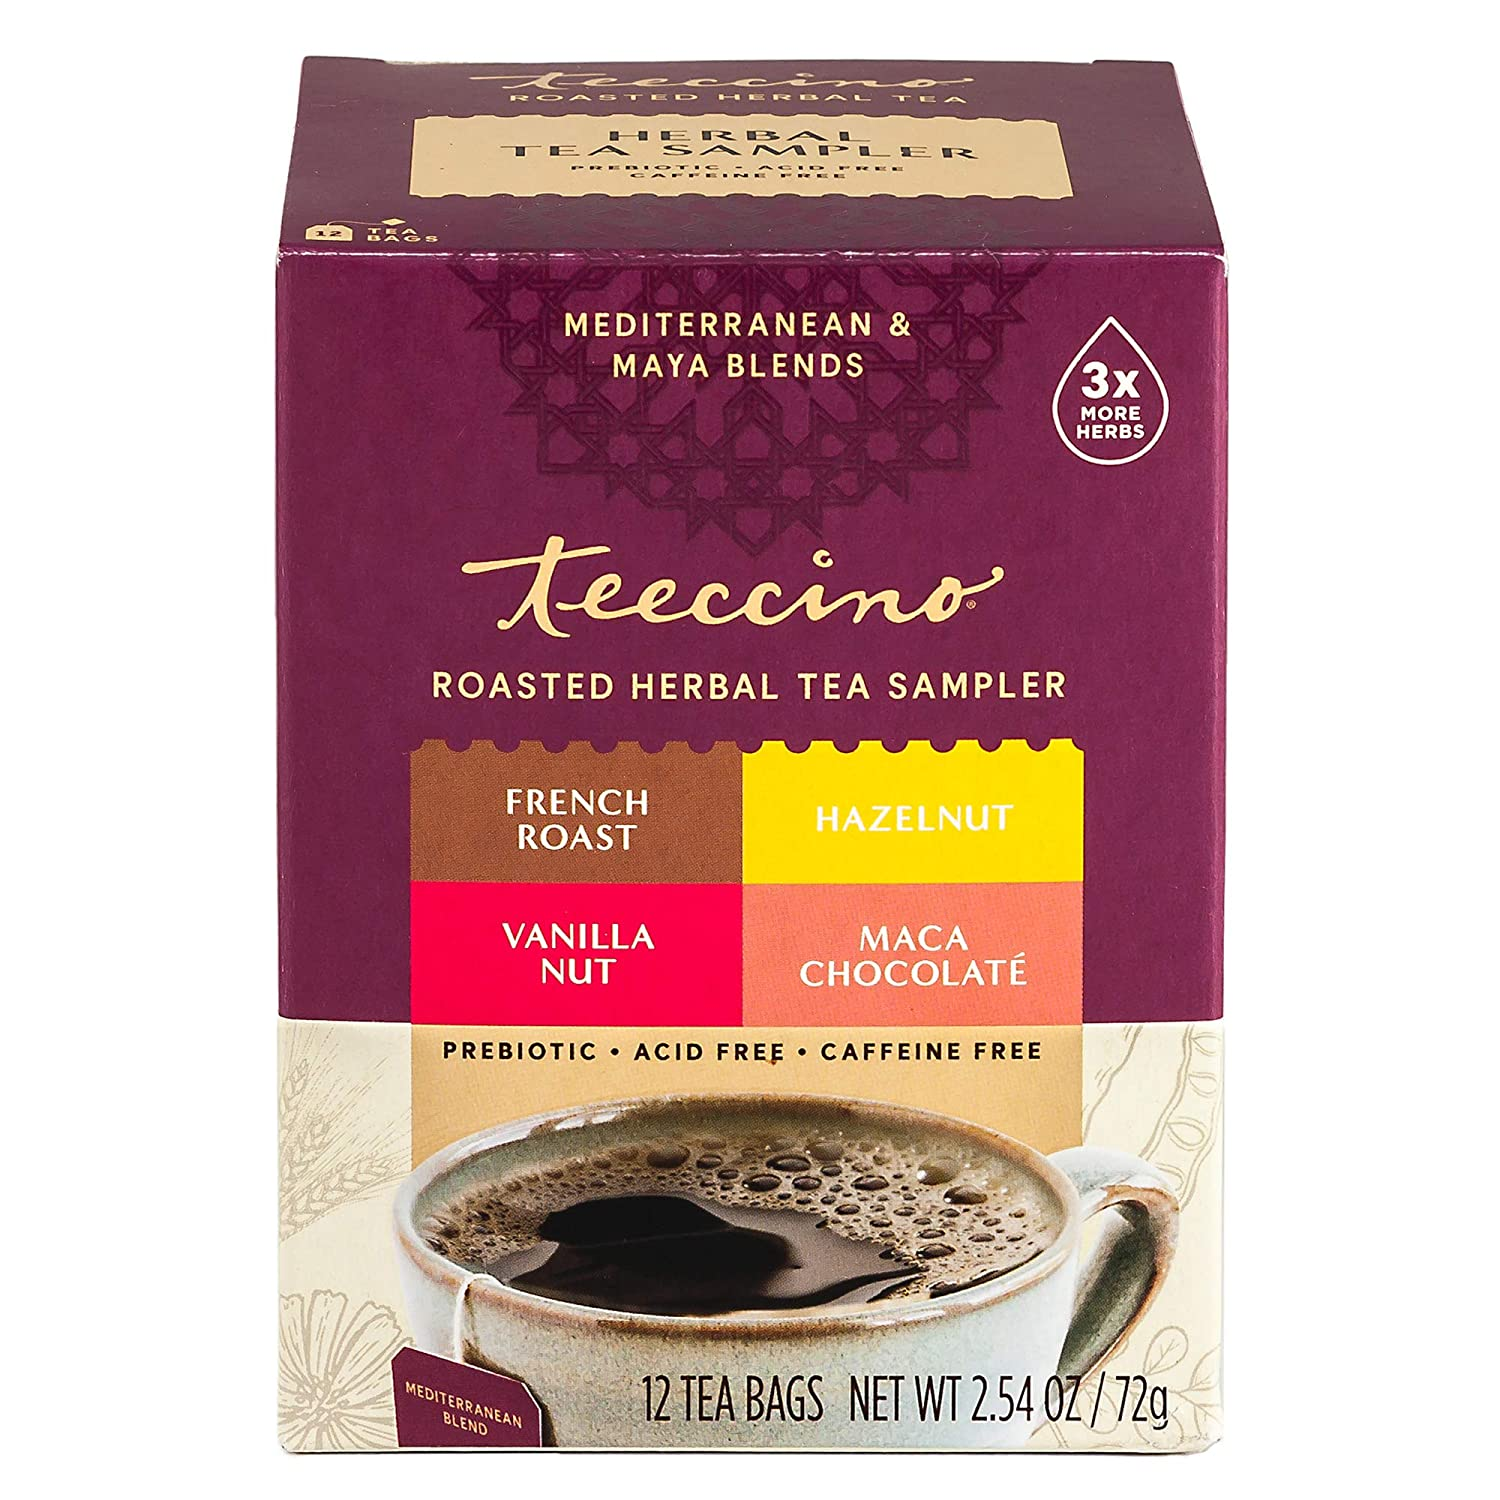 Teeccino Herbal Tea Sampler Assortment – Maca Chocolaté, French Roast, Hazelnut, Vanilla Nut – Rich & Roasted Herbal Tea That's Caffeine Free & Prebiotic for Natural Energy, 12 Tea Bags